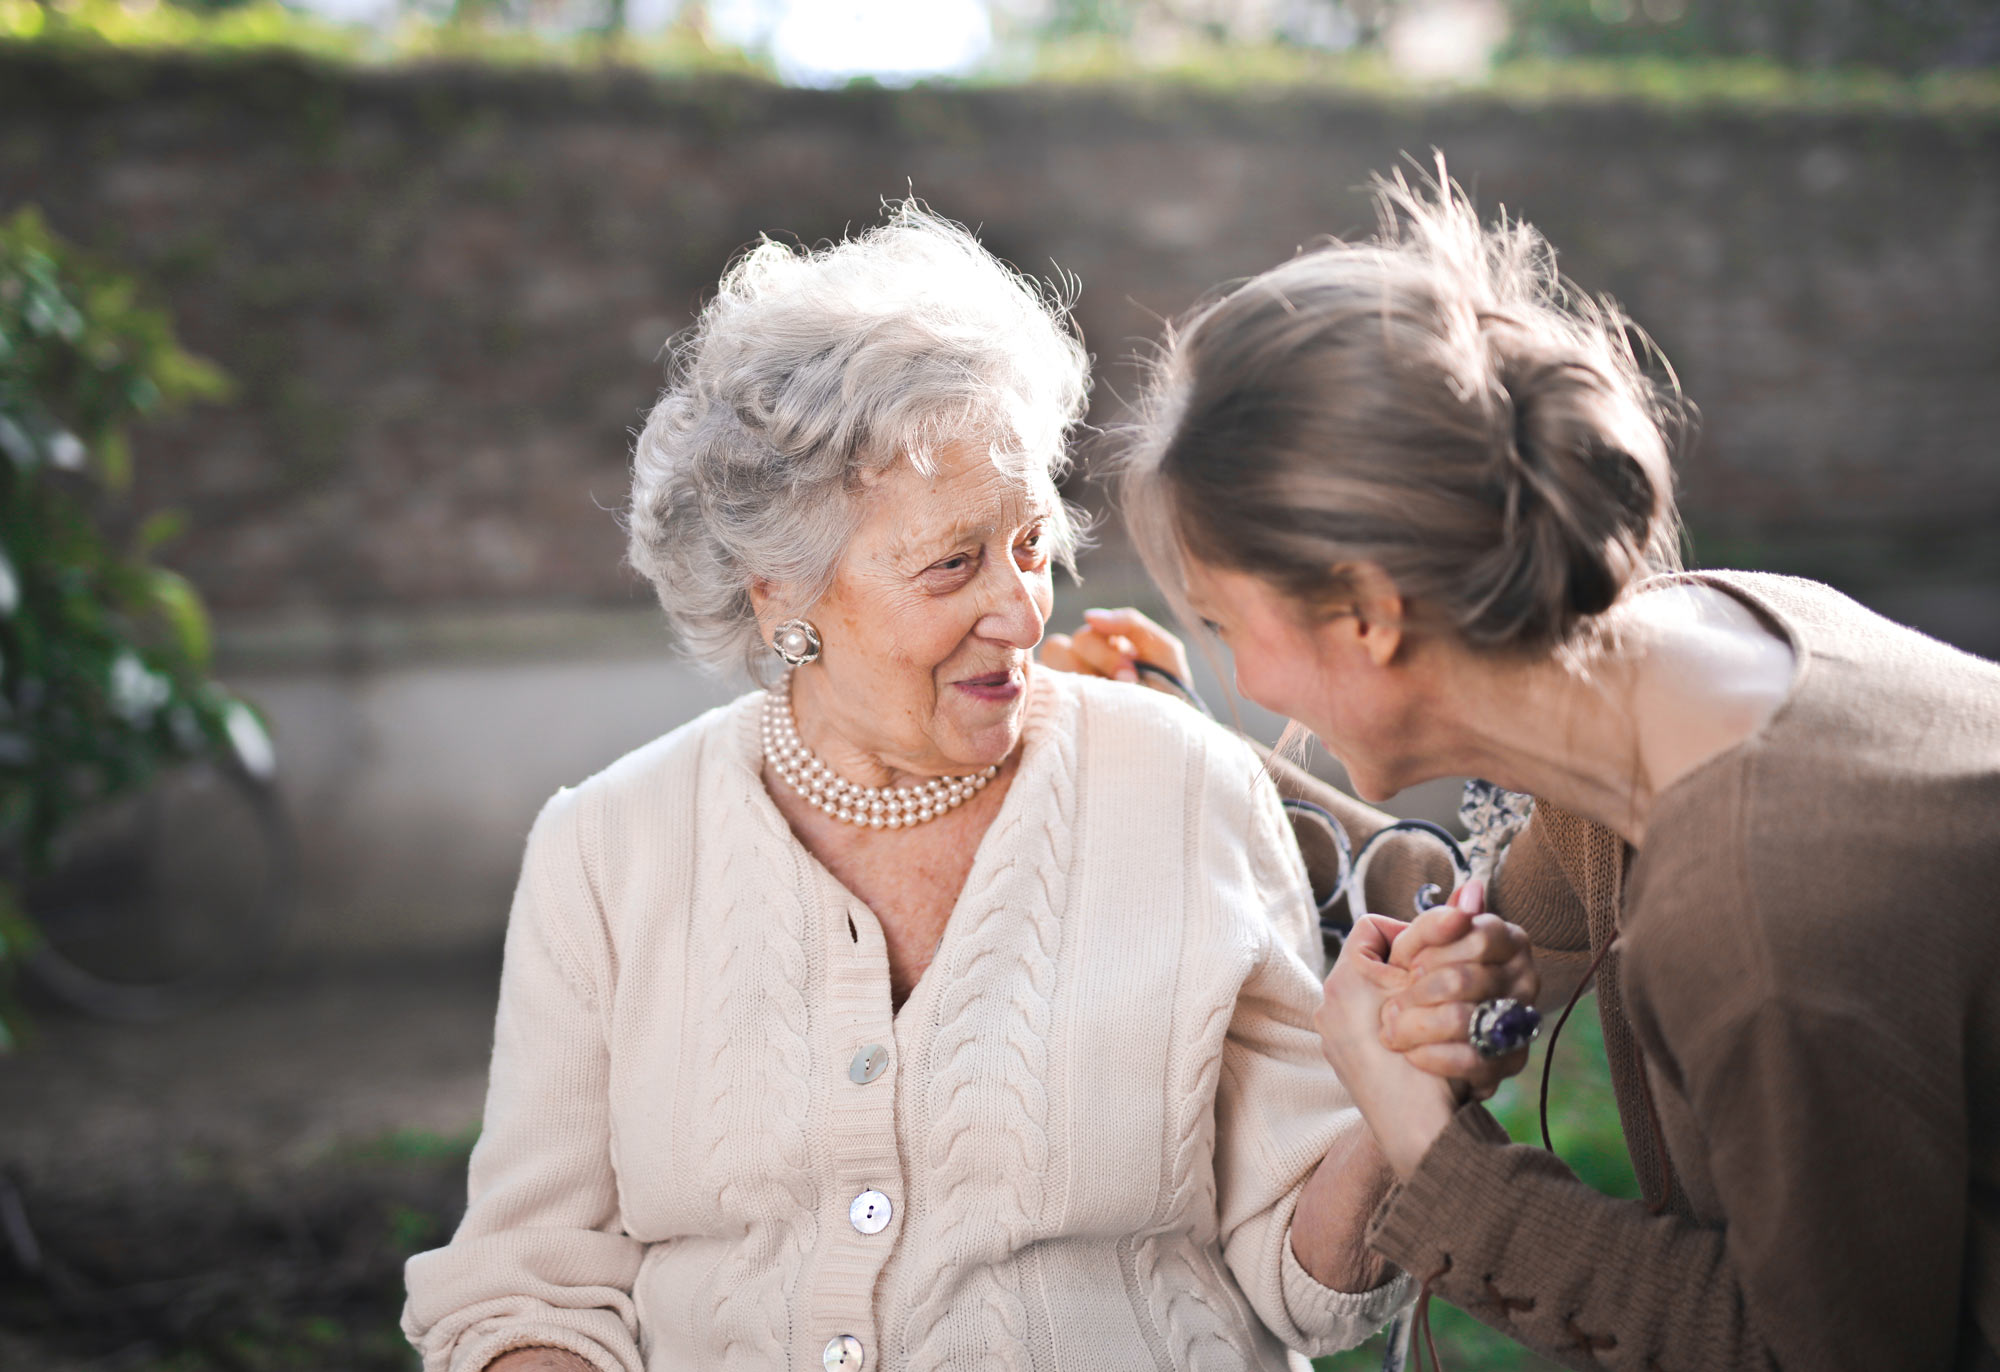 Press Release – Aging in Place Conference